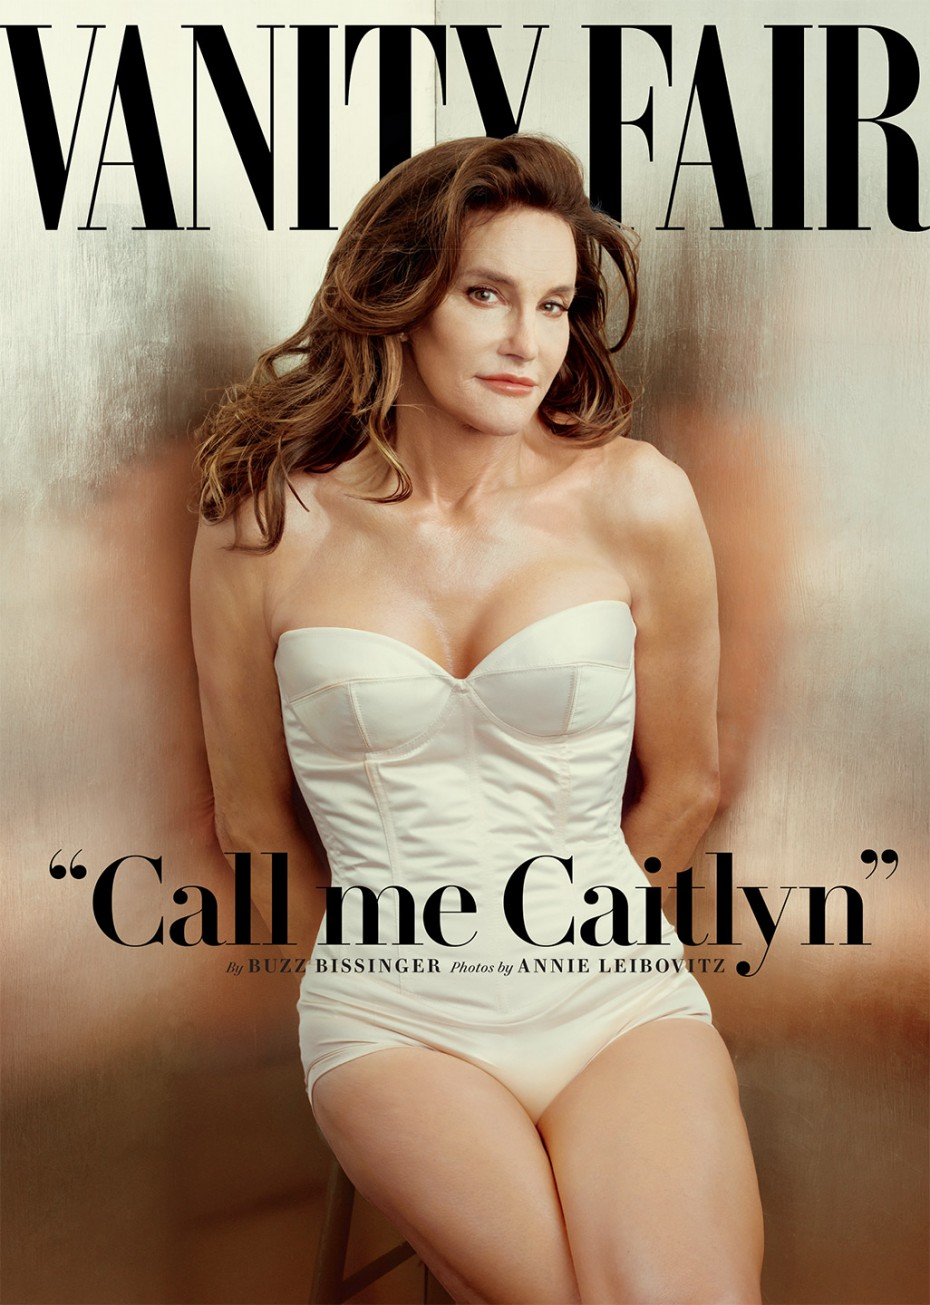 Jenner's new public identity as a transgender woman debuts on the cover of Vanity Fair.